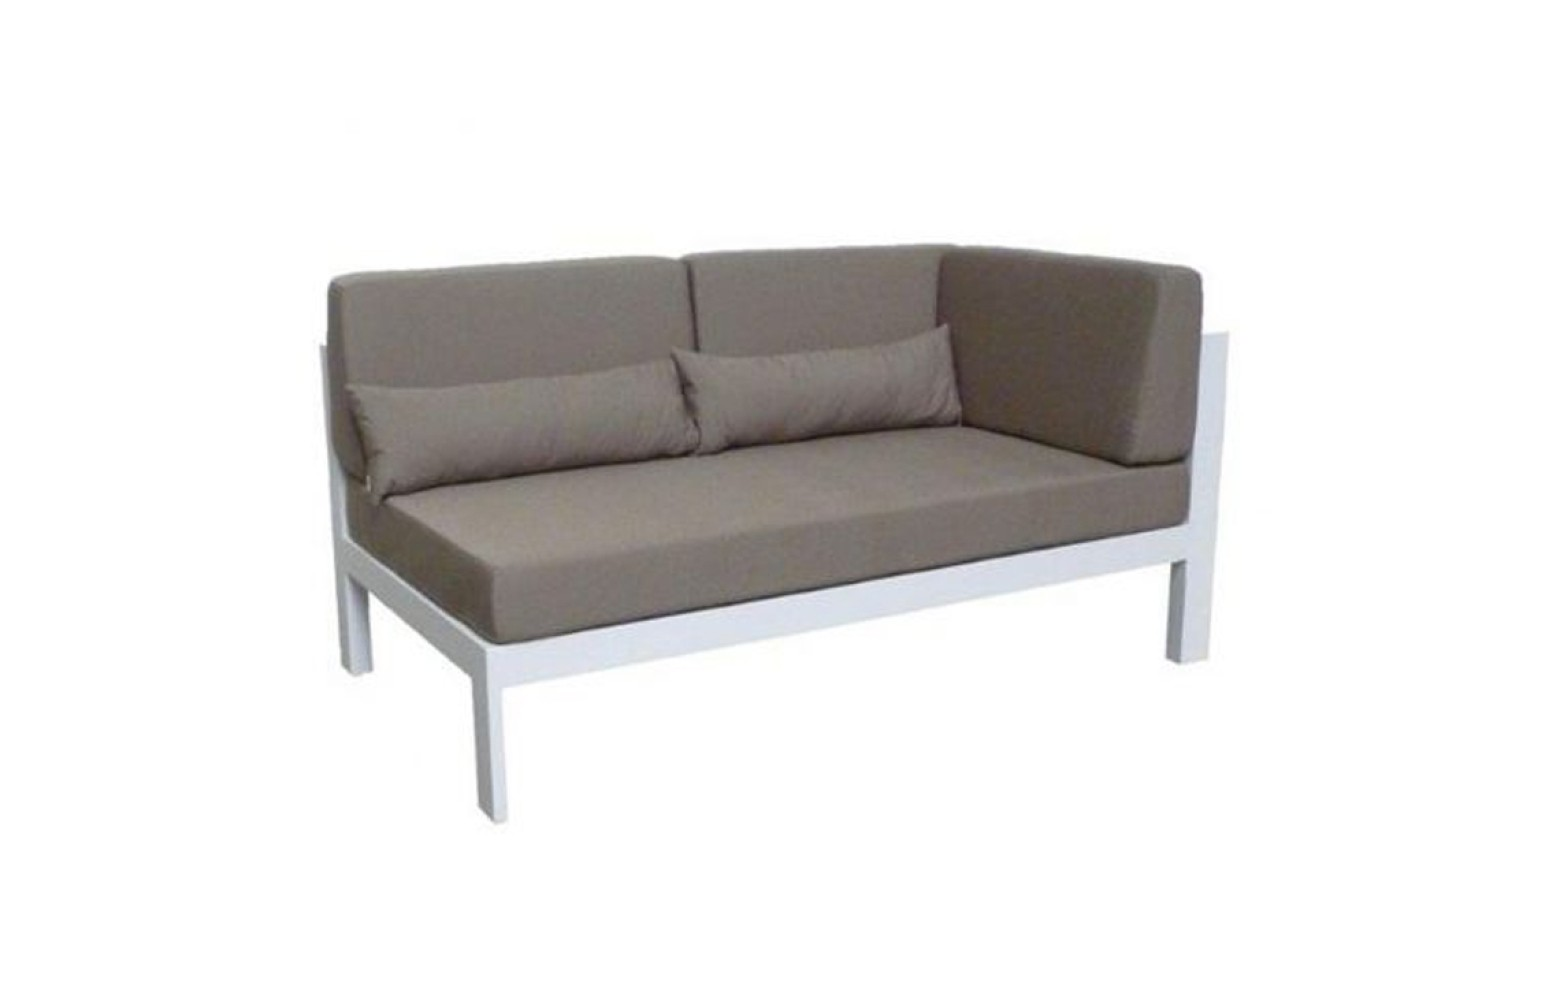 Perla gartensofa gartensofas outdoor who 39 s perfect for Couch 0 finanzierung